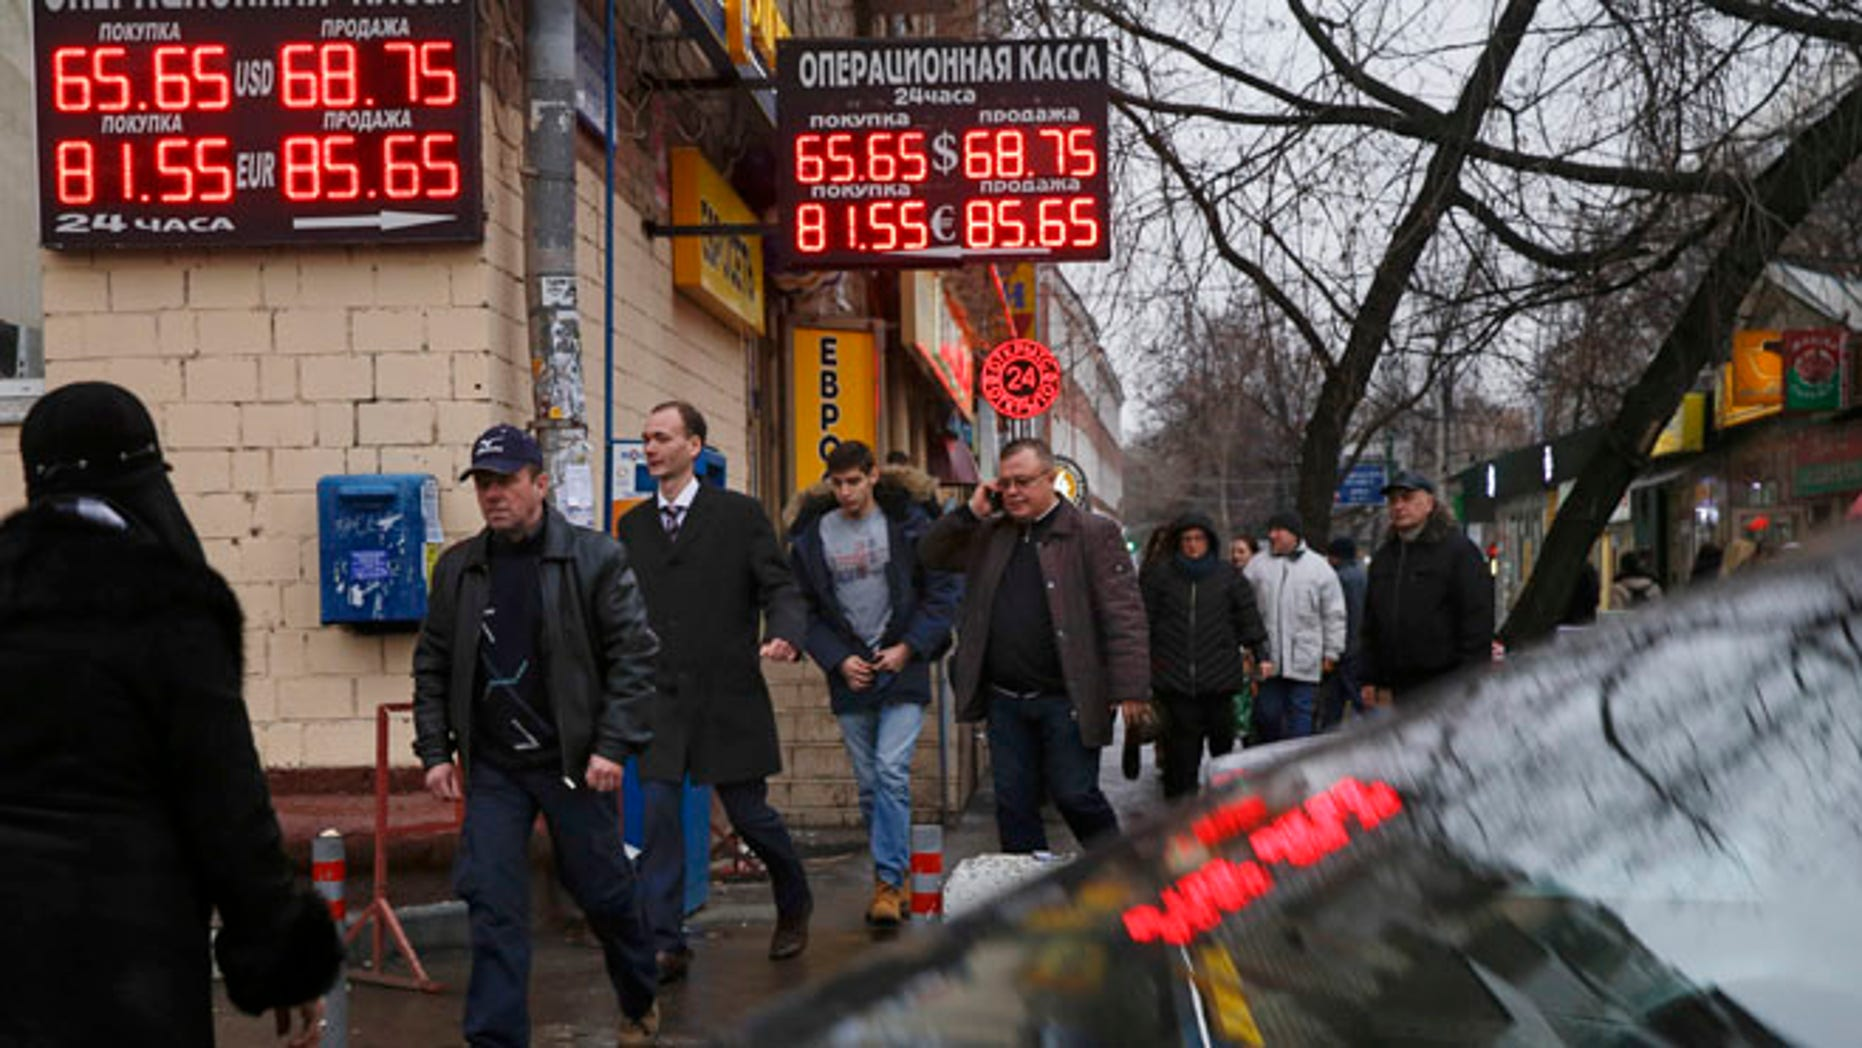 Dec. 16, 2014: Signs advertising currencies are illuminated next to the exchange office in Moscow, Russia.